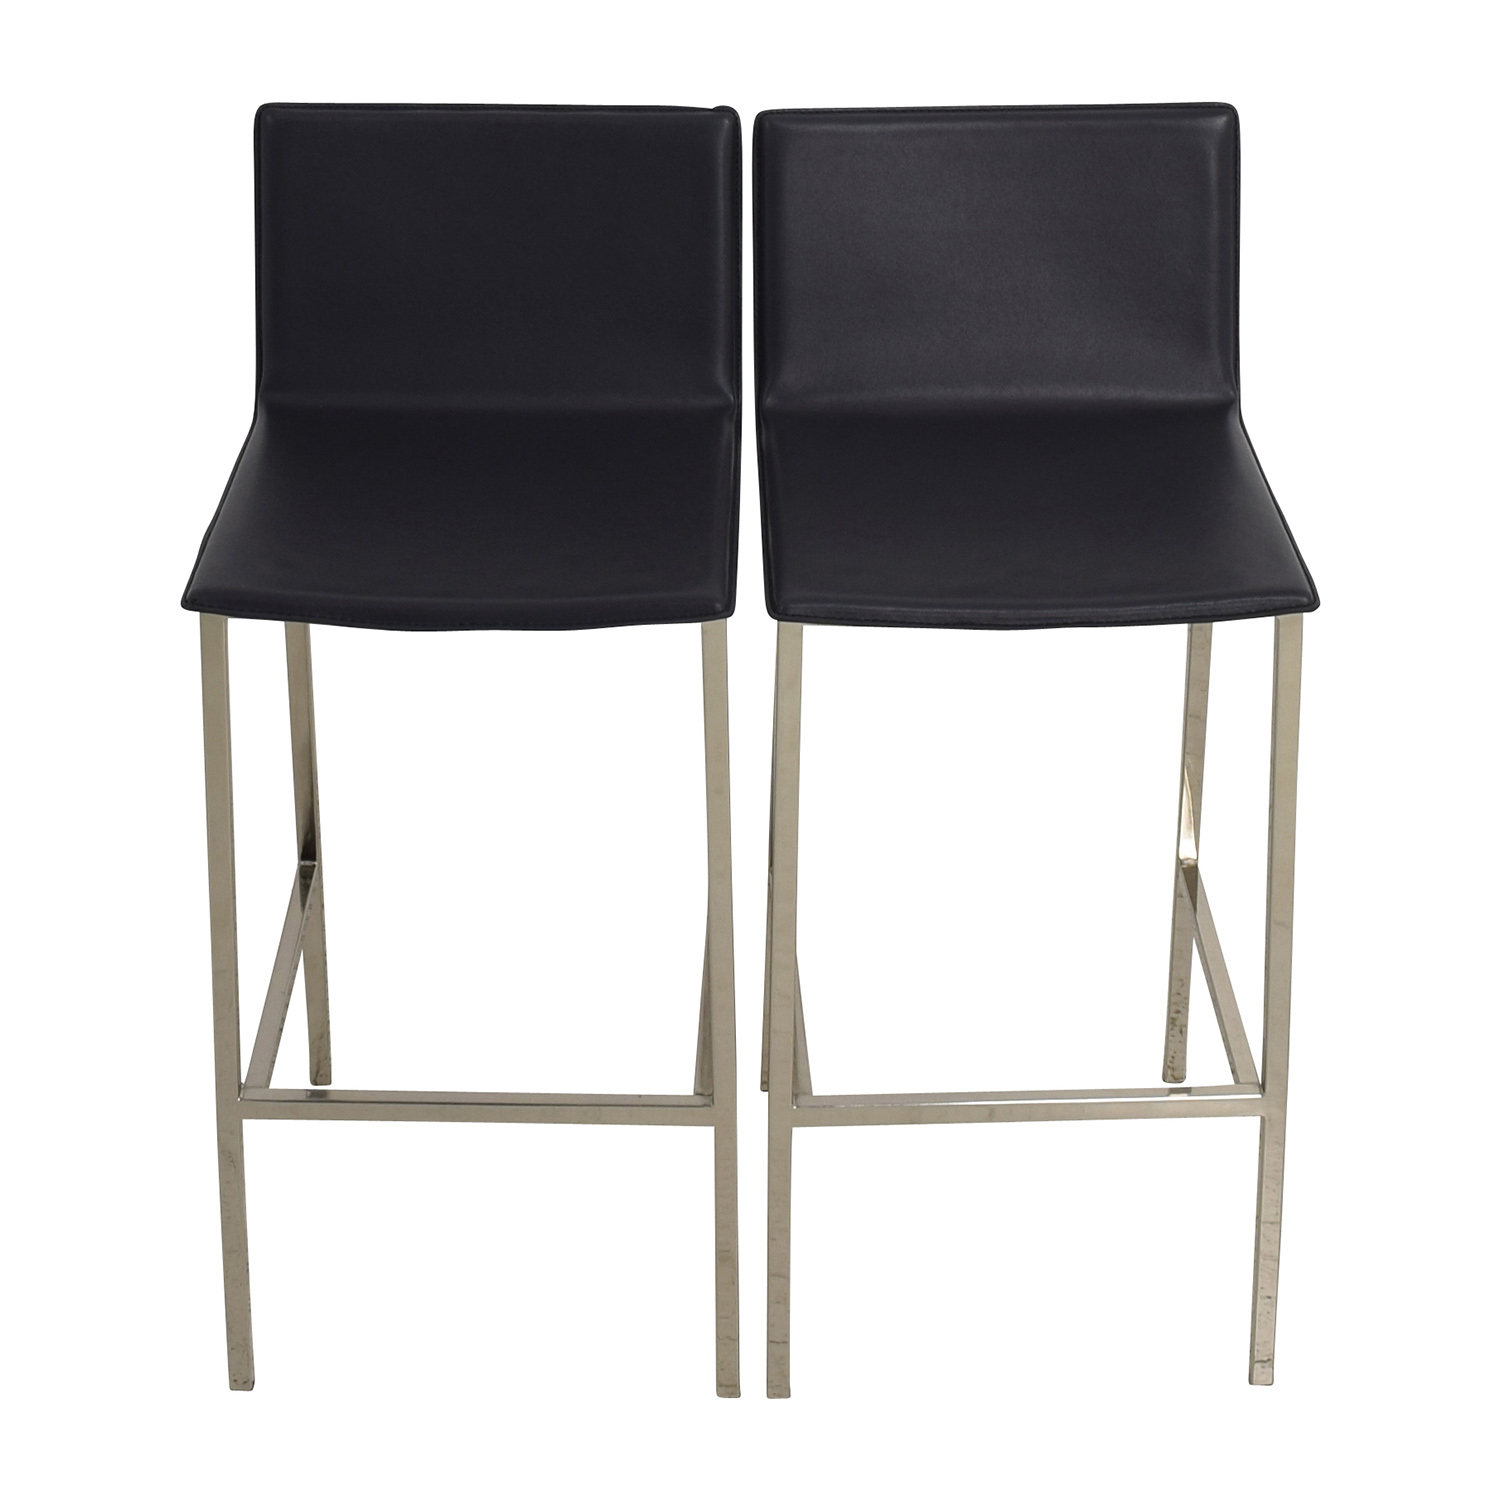 Superb 78 Off Cb2 Cb2 Phoenix Carbon Grey Black Leather Bar Stools Chairs Ncnpc Chair Design For Home Ncnpcorg